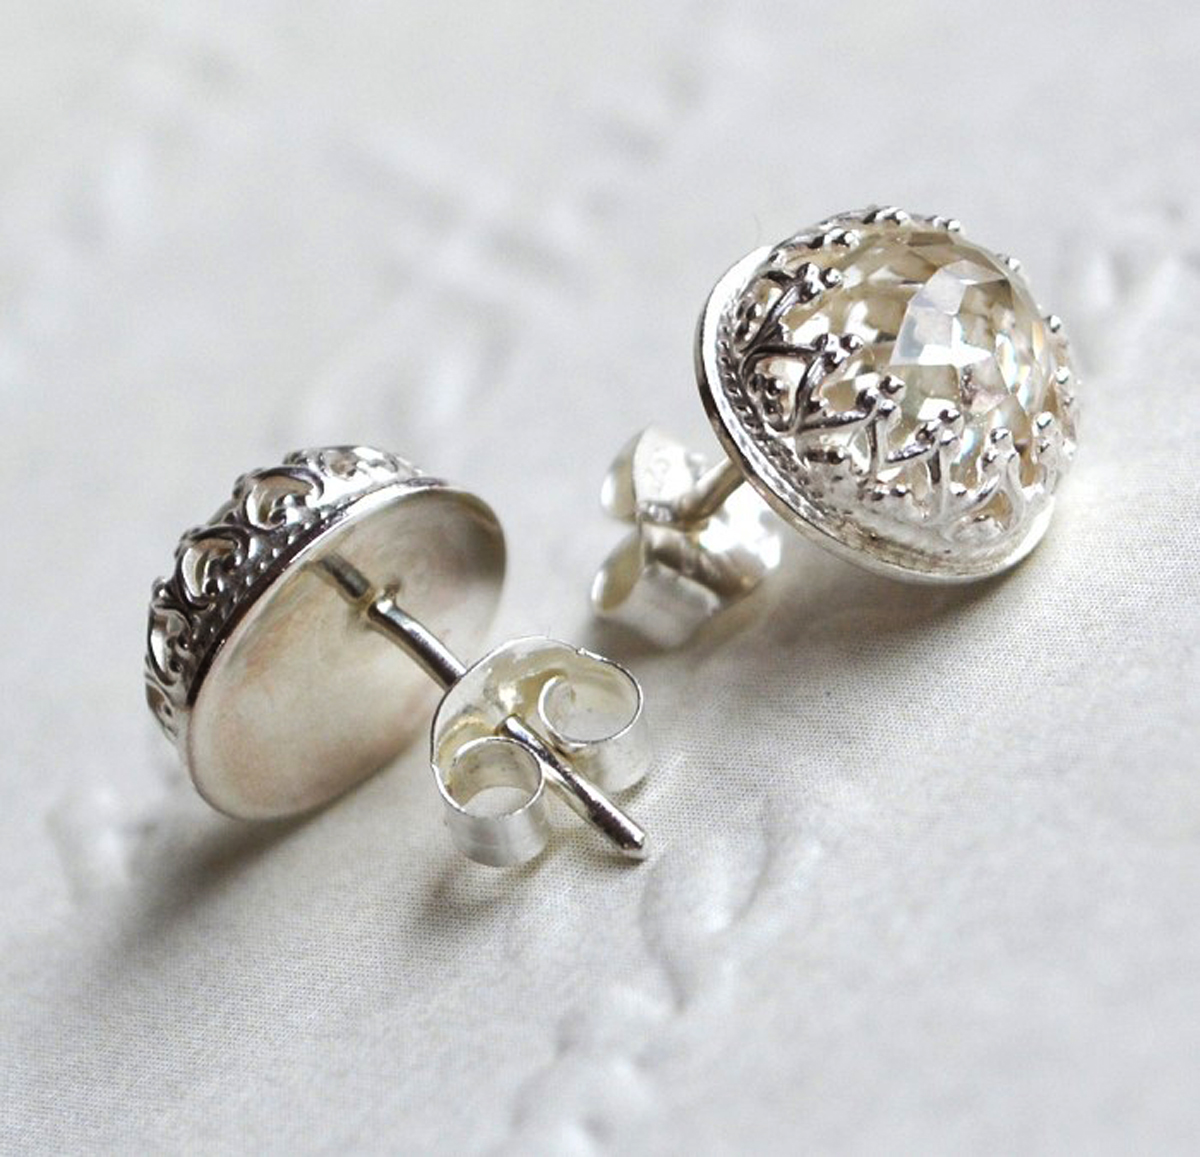 White topaz studs with crown detail in eco-friendly sterling silver.